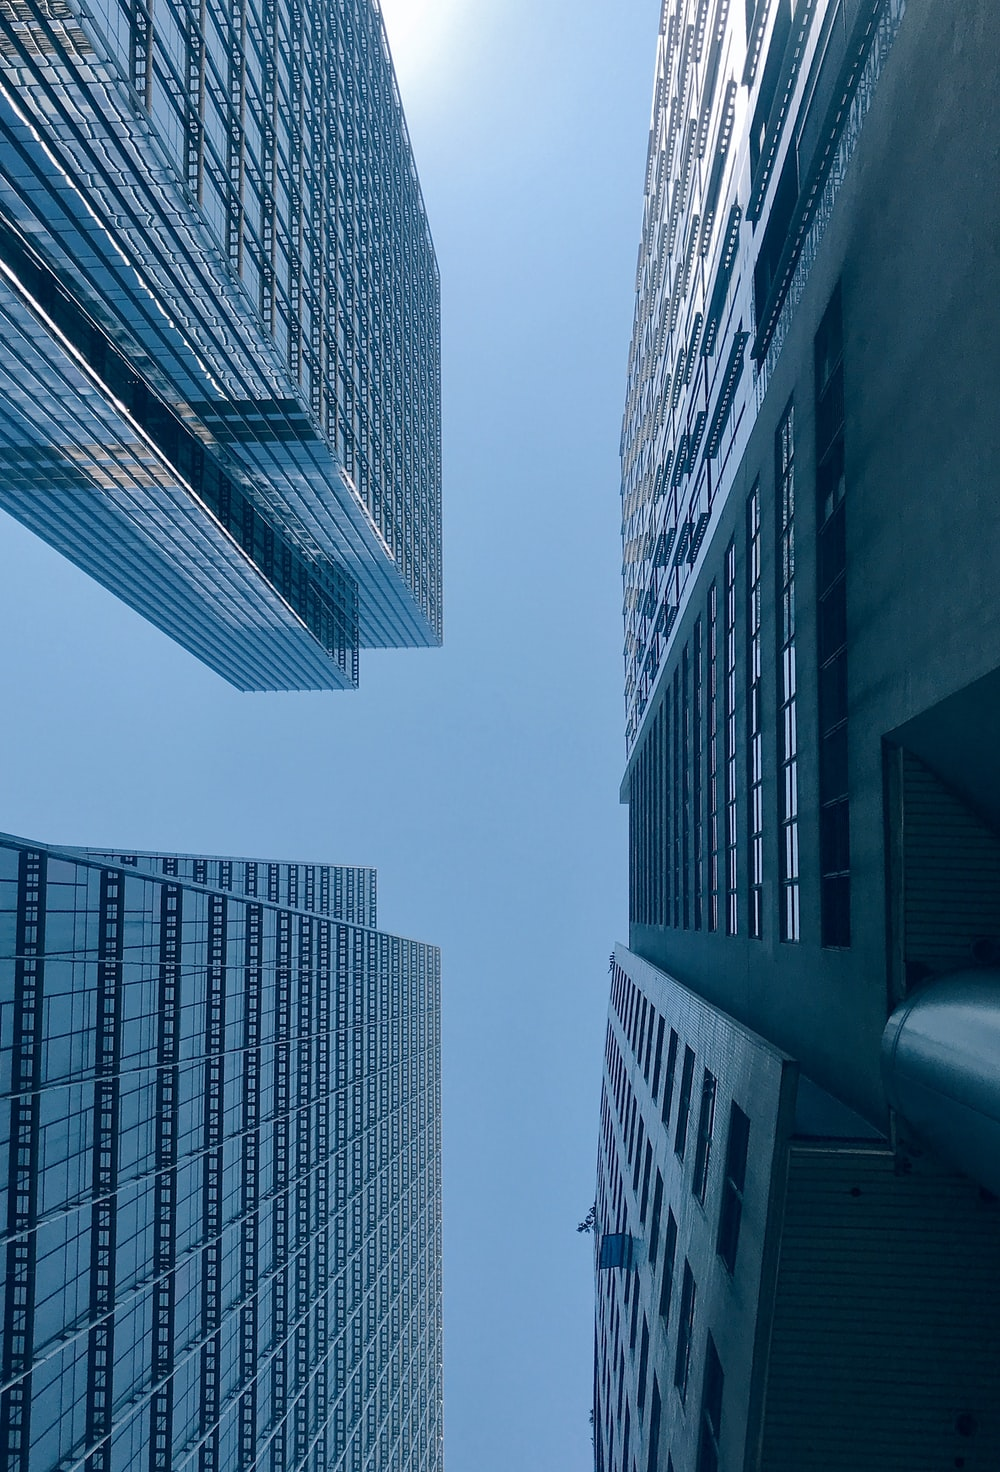 high-rise buildings during daytime